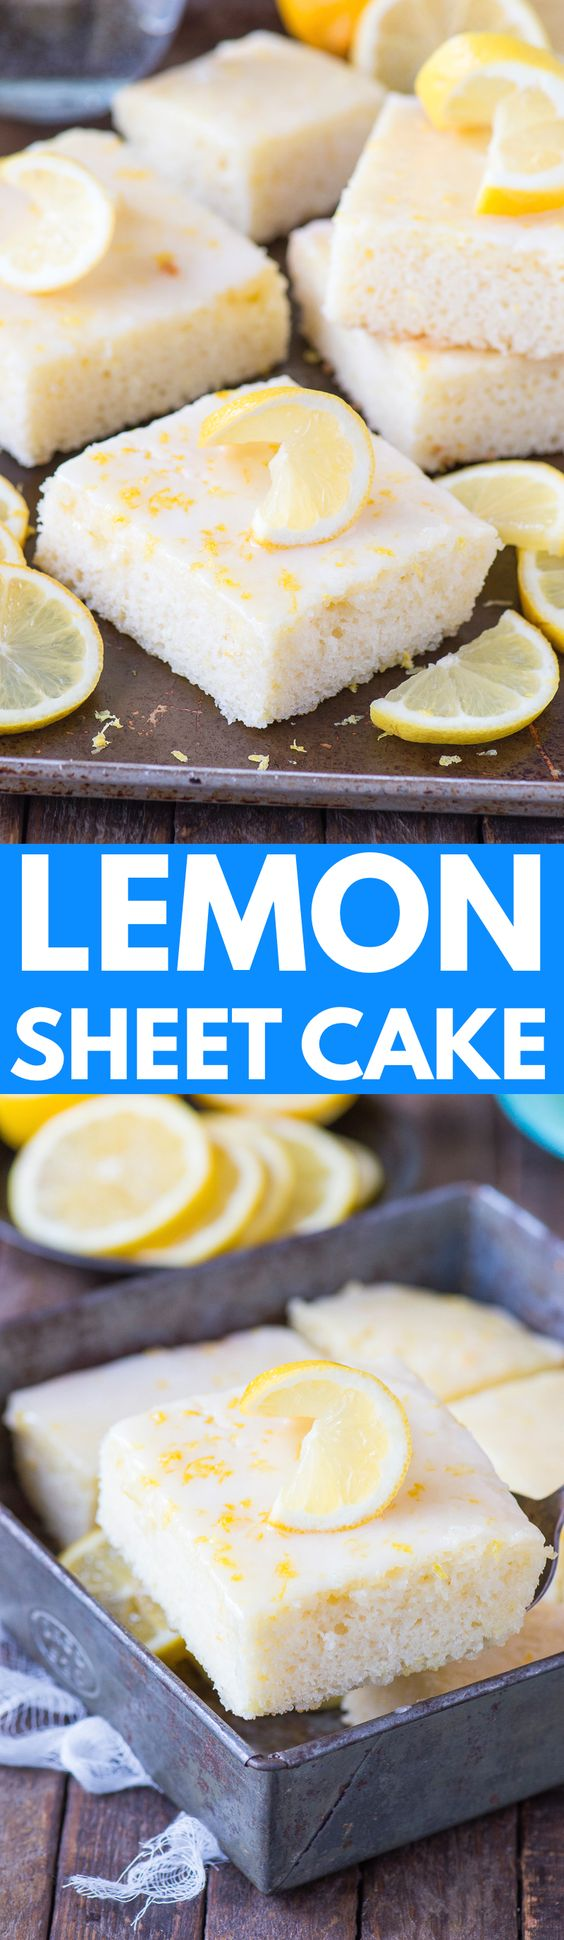 Easy Lemon Sheet Cake Recipe via The First Year - The best lemon cake made in a 9x13 inch pan with a fresh and quick lemon glaze! The Best EASY Sheet Cakes Recipes - Simple and Quick Party Crowds Desserts for Holidays, Special Occasions and Family Celebrations #sheetcakerecipes #sheetcake #sheetcakes #cakerecipes #cakes #dessertforacrowd #partydesserts #christmasdesserts #thanksgivingdesserts #newyearseve #birthdaydesserts